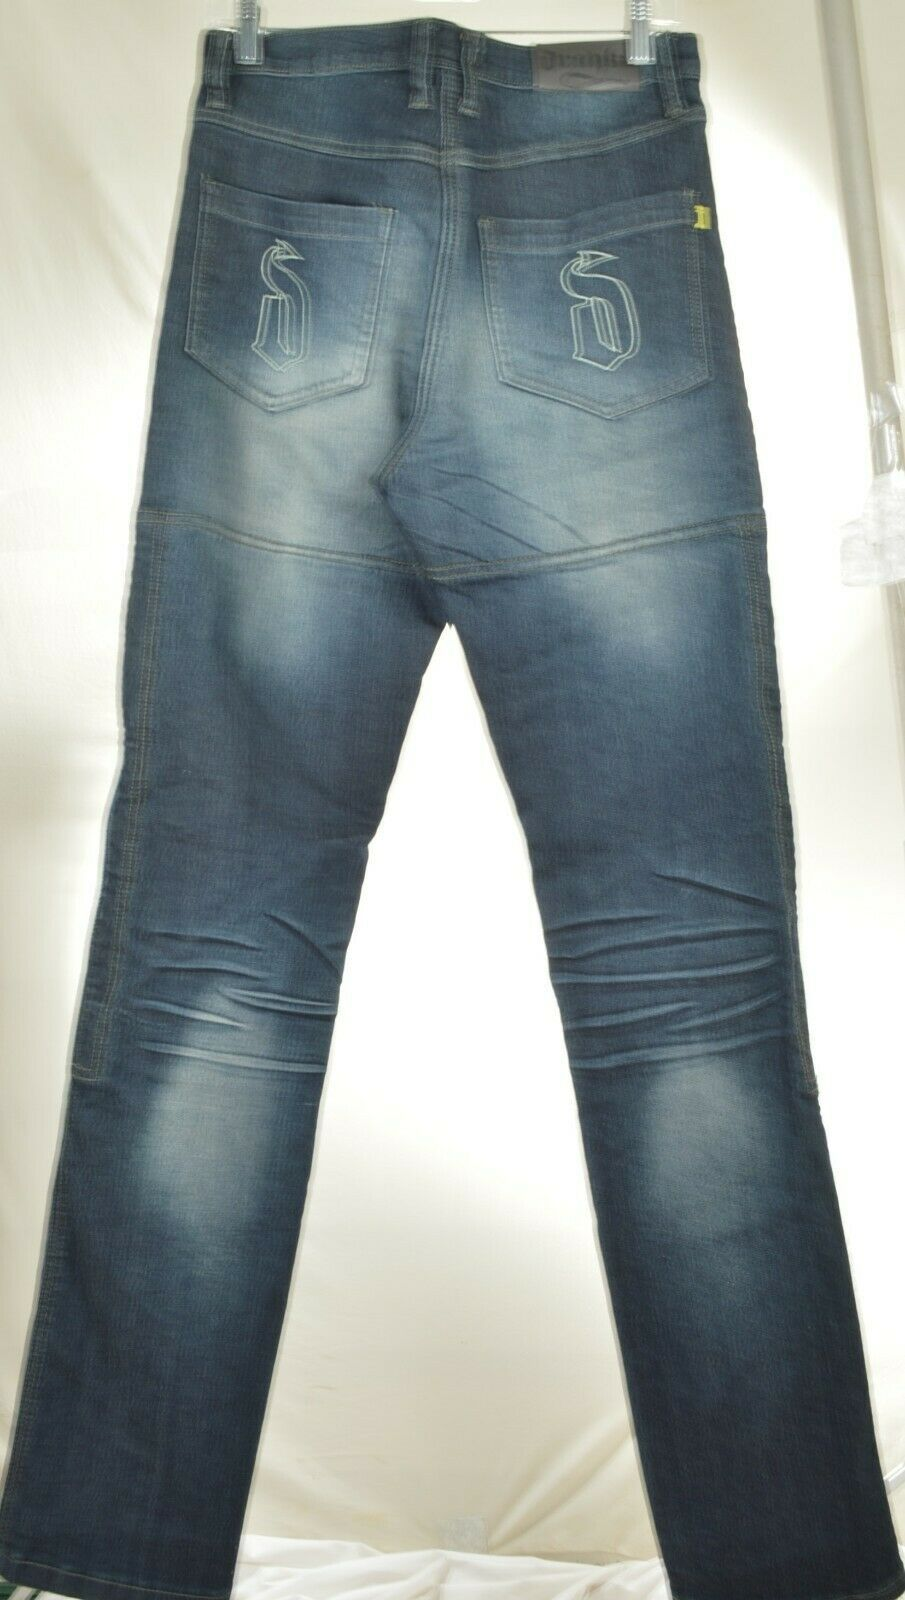 Drayko Jeans Mens 30 x 37 Motorcycle Riding extra long padded - Slightly Used image 2